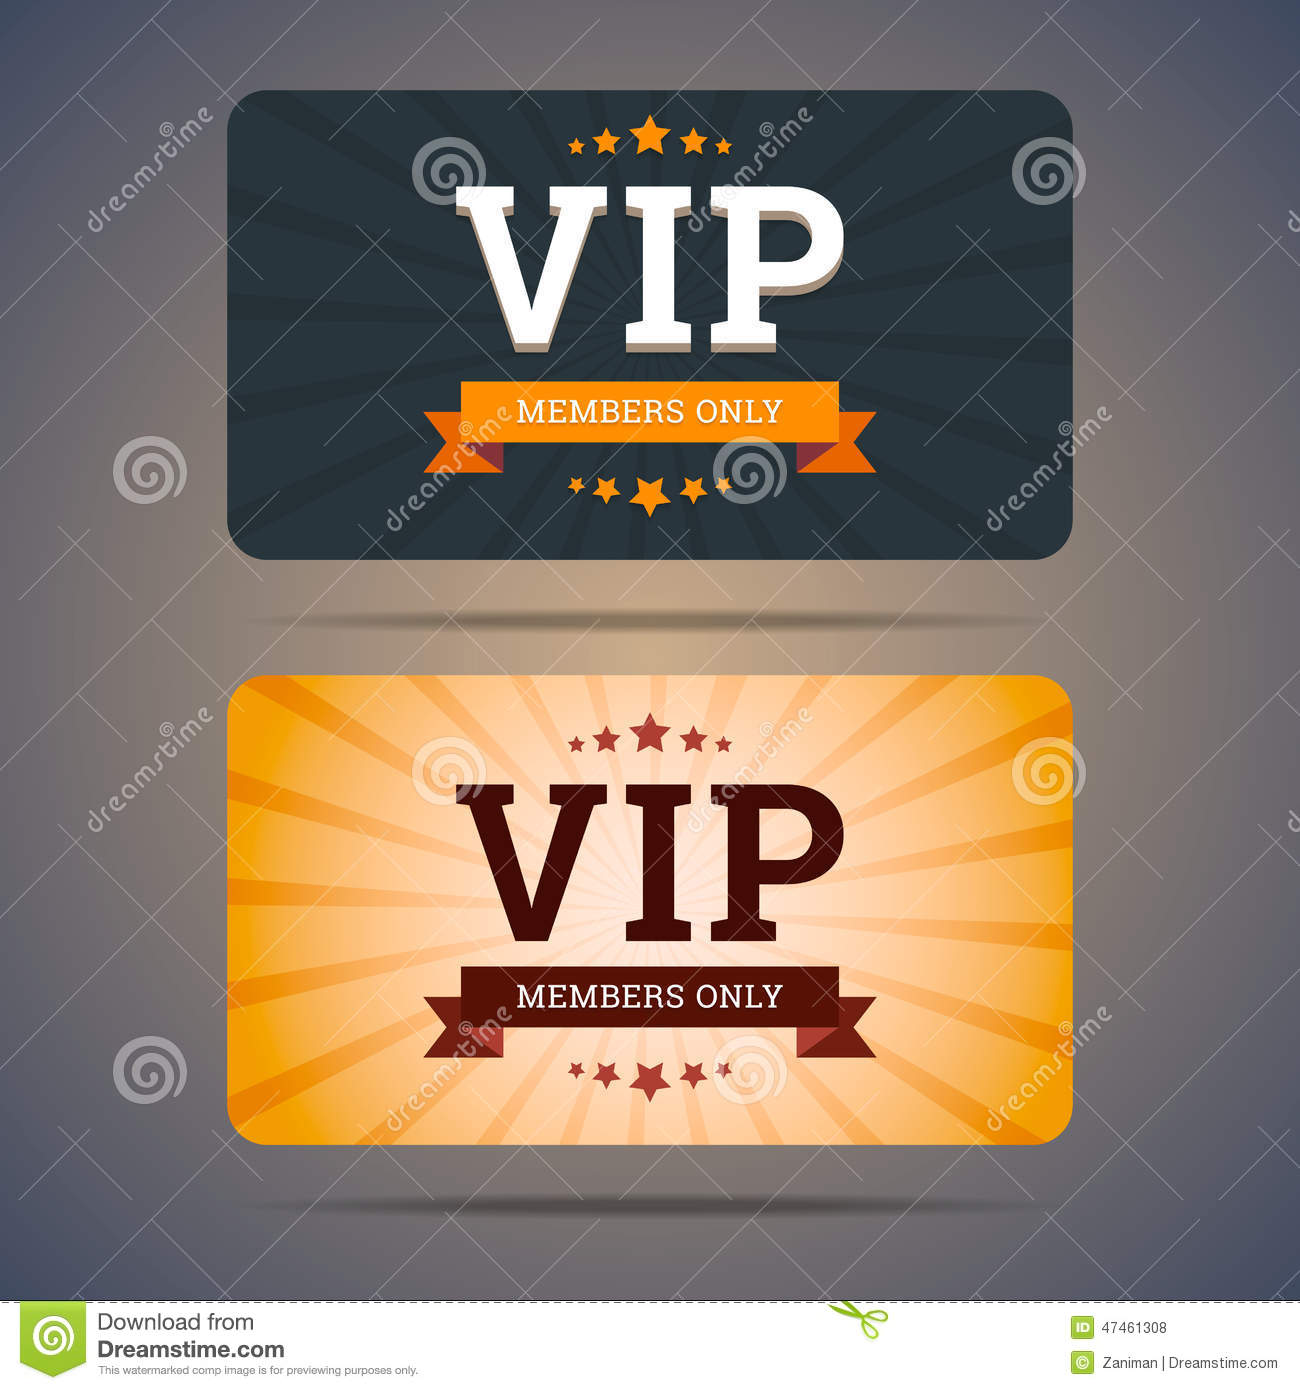 Vip Club Card Design Templates In Flat Style Vector Image – Club Card Design